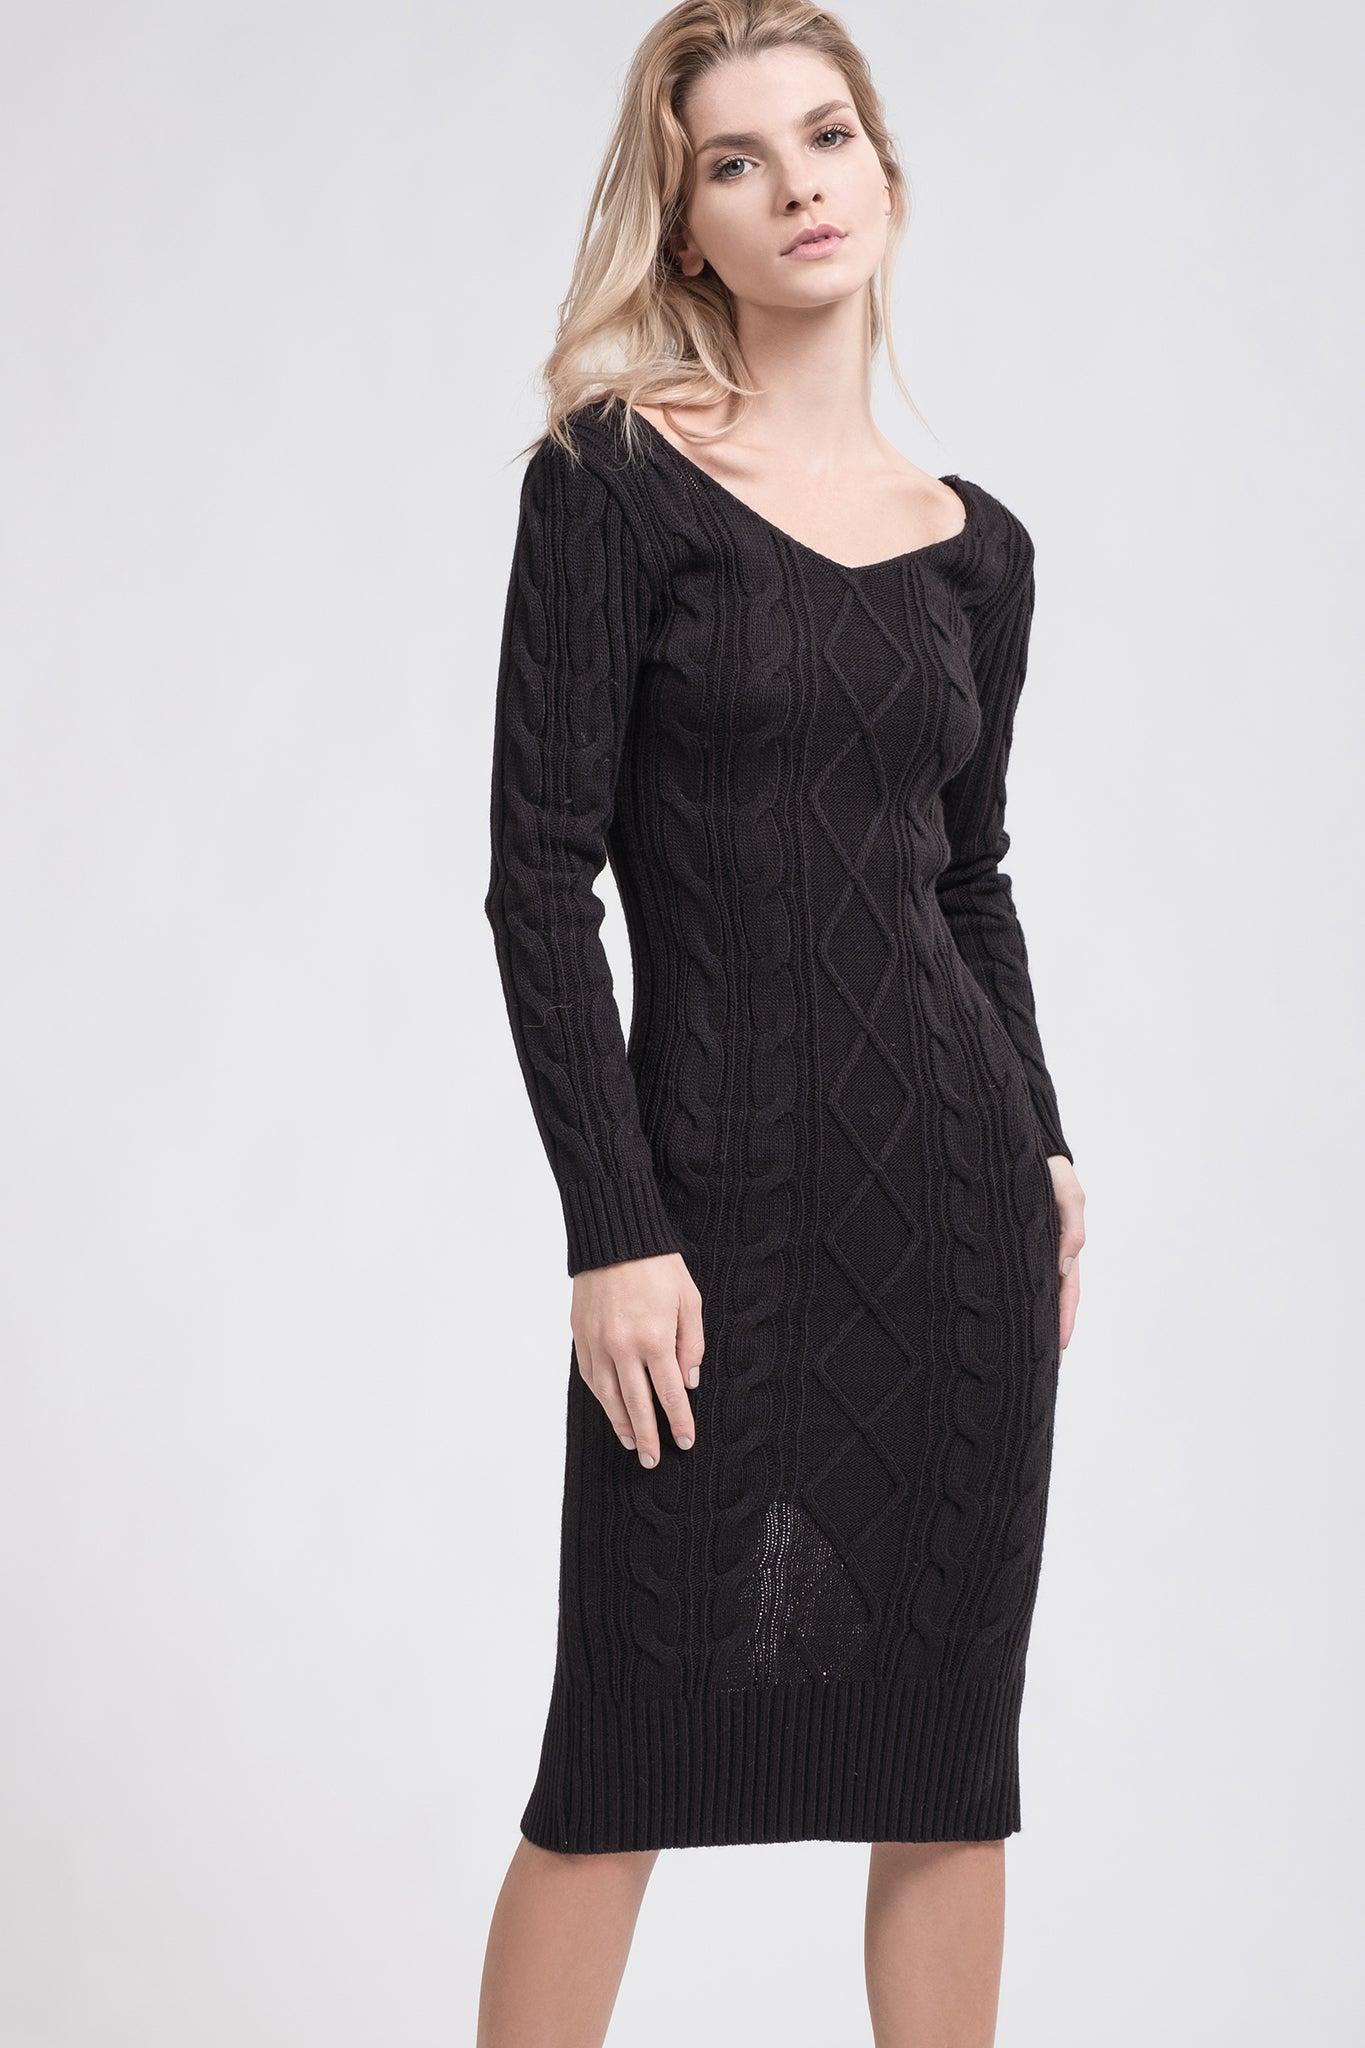 Double V Neck Cable Knit Sweater Dress Joa